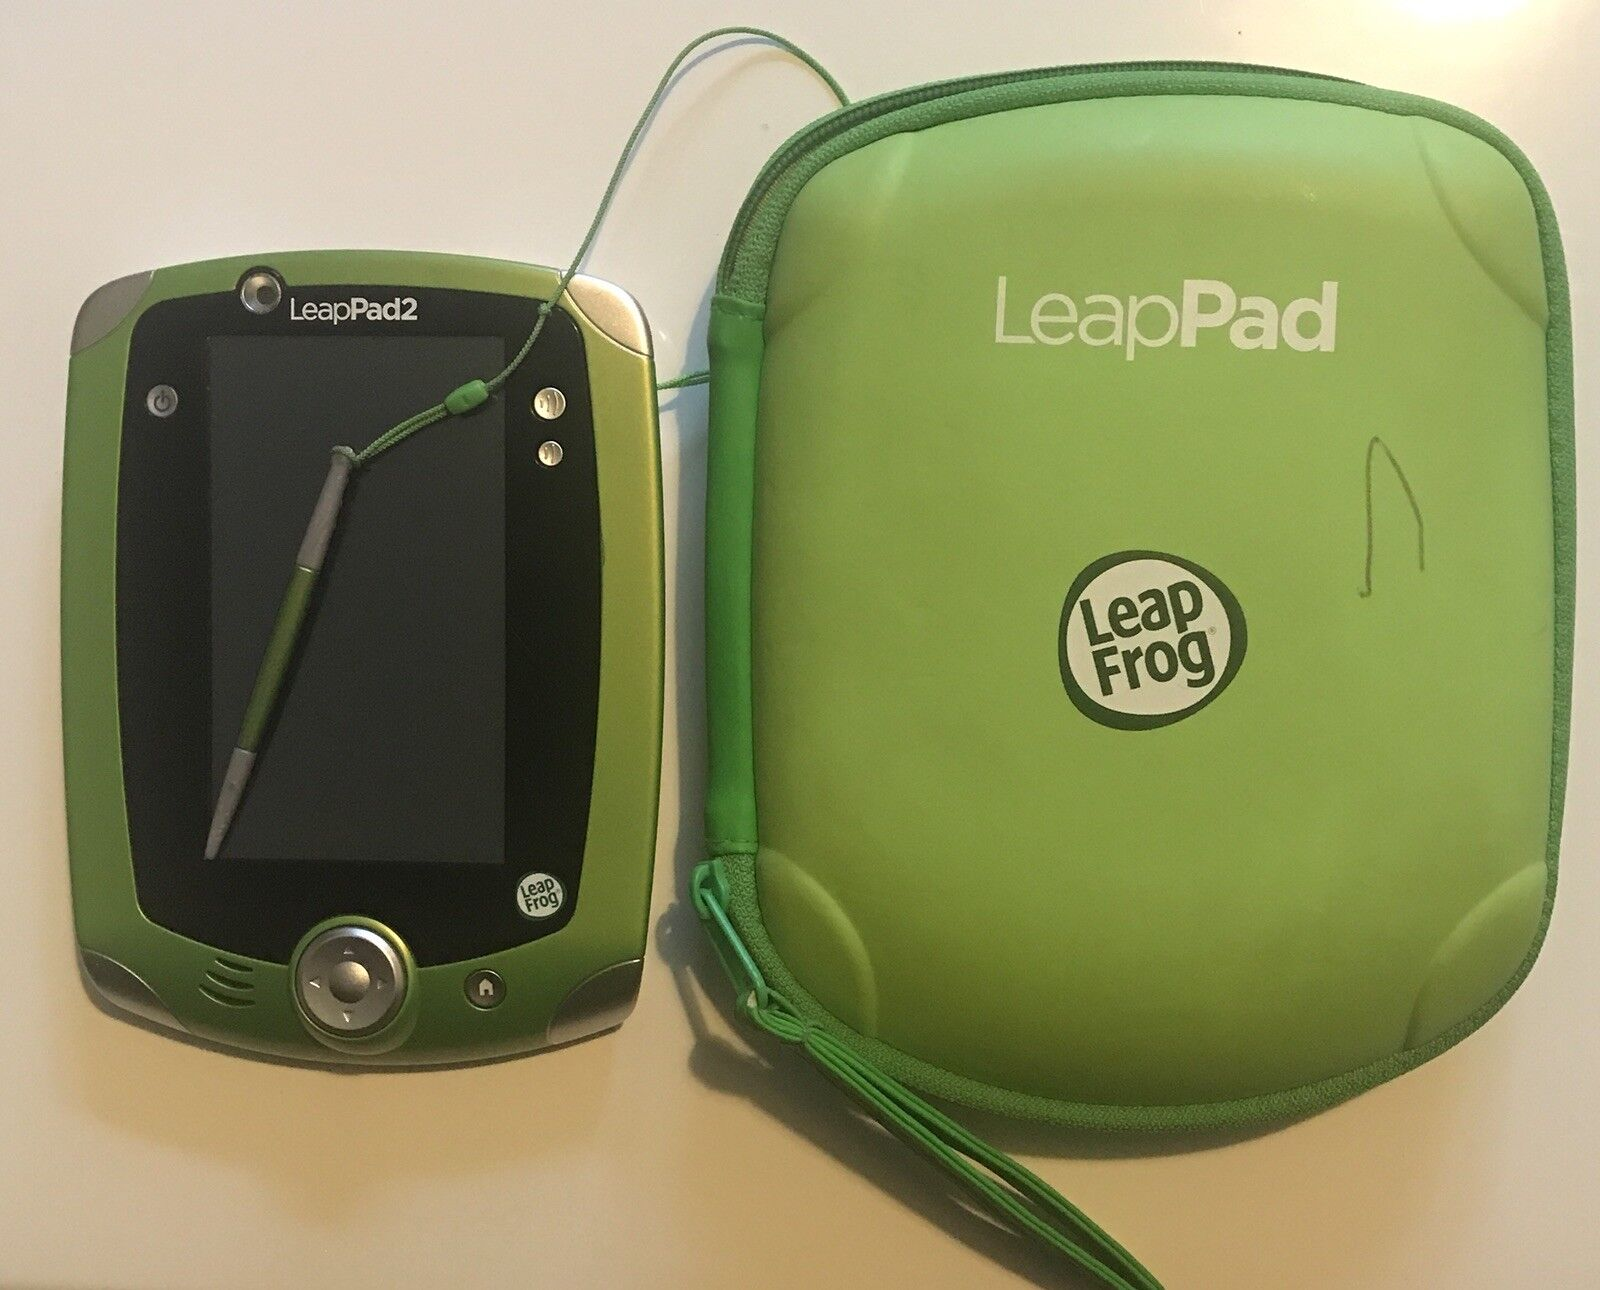 Green Leap Frog Leap Pad 2 Explorer Kids Tablet, Carry Case, Stylus And 2 Games